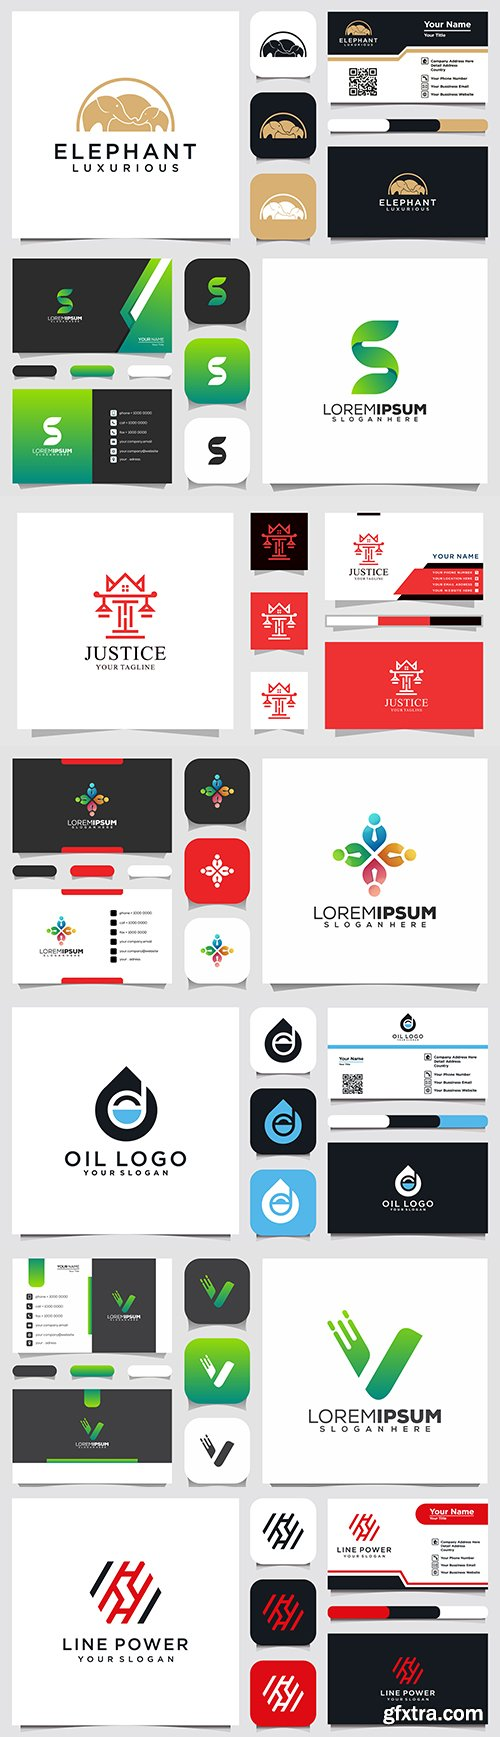 Company logo, badge and business card design